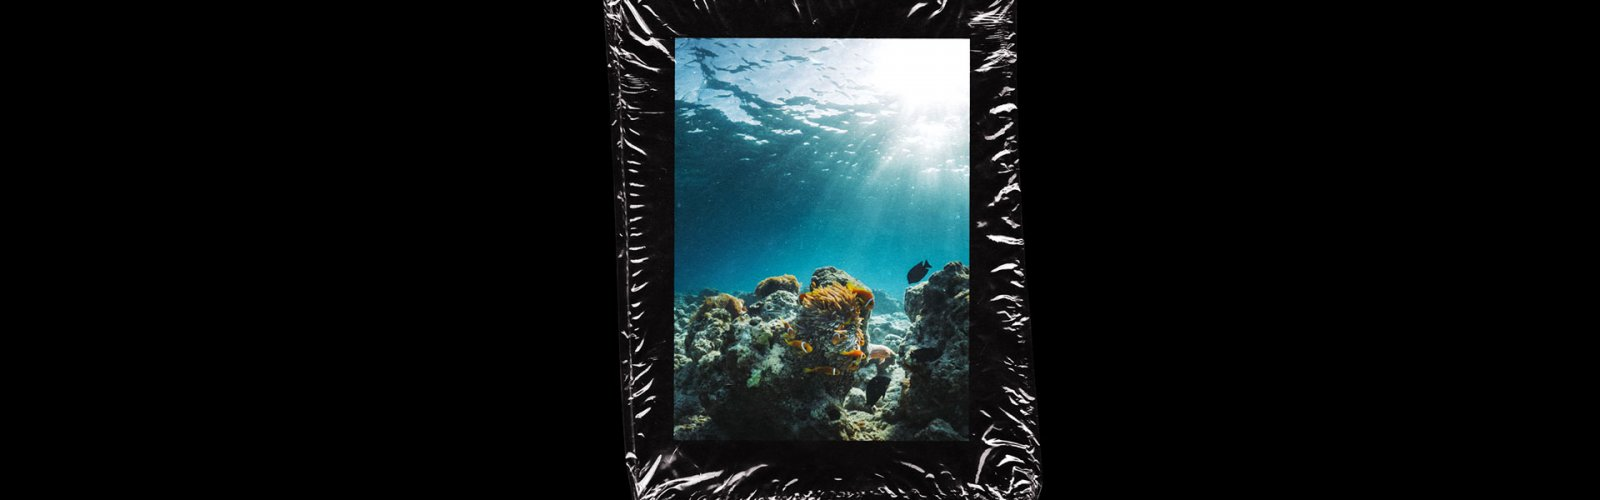 image of an ocean, wrapped in plastic